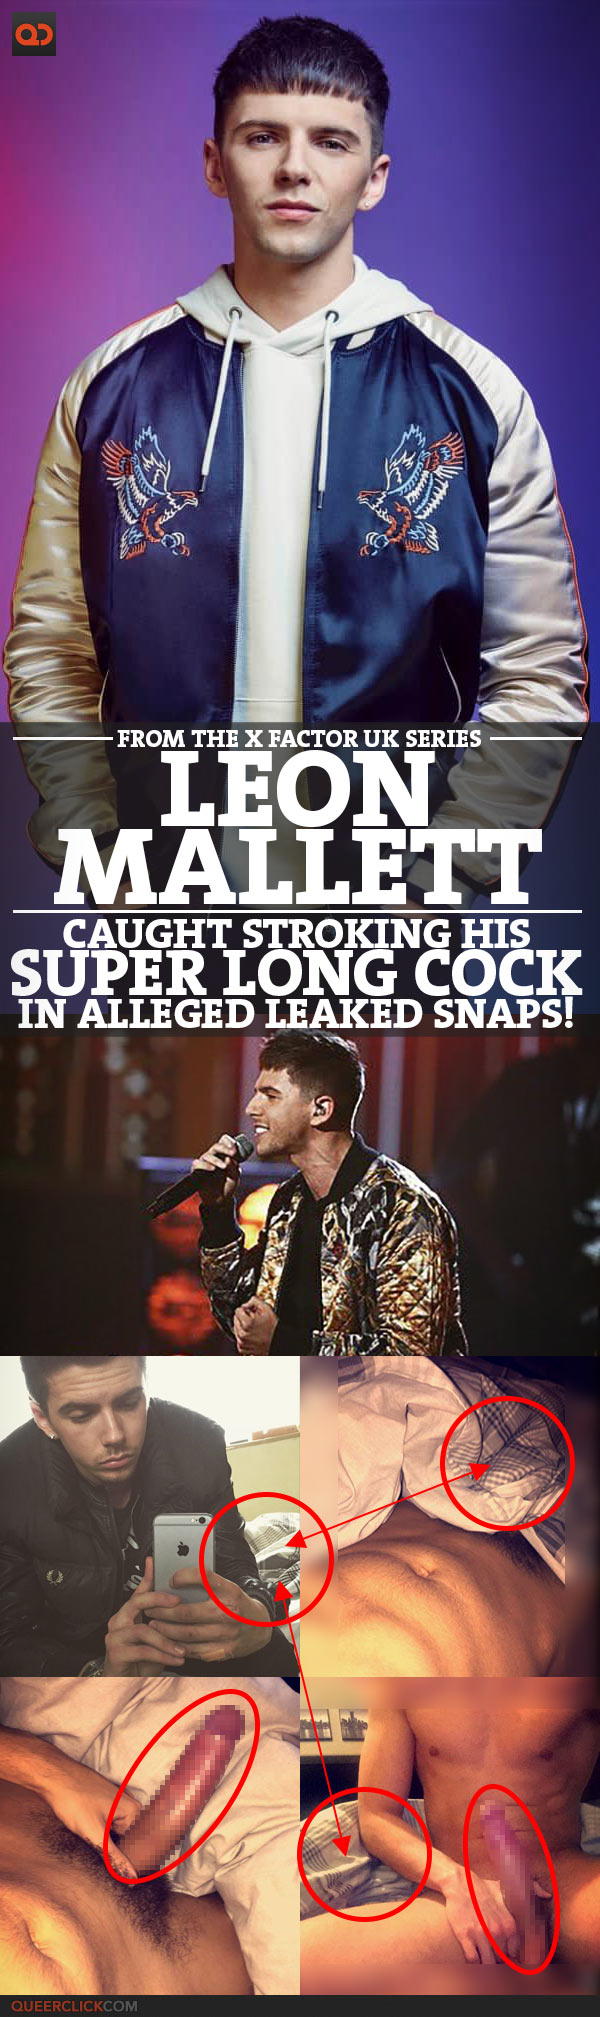 Leon Mallett, From The X Factor UK Series 14, Caught Stroking His Super Long Cock In Alleged Leaked Videos and Snaps!